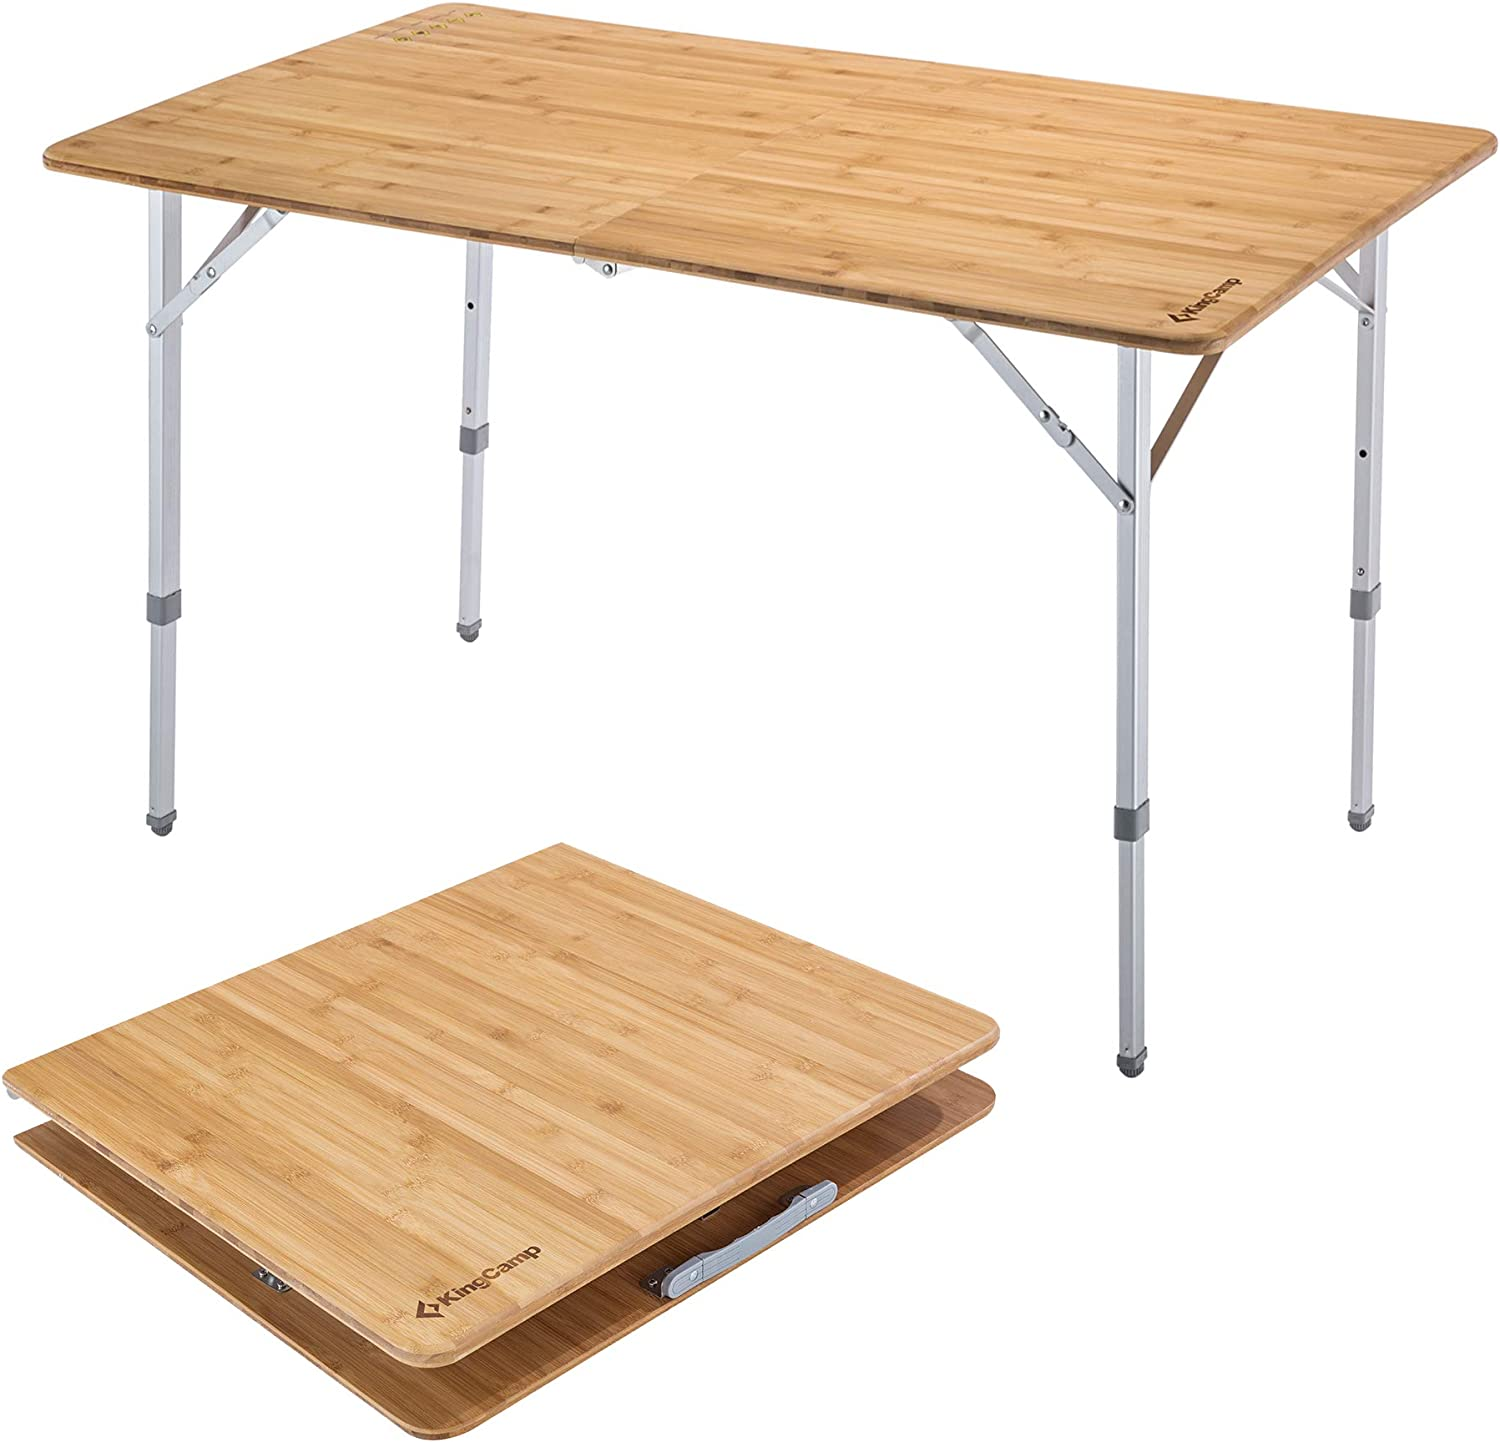 KingCamp Folding Bamboo Table Aluminum Frame 3 Heights 4 Person / 6 Person